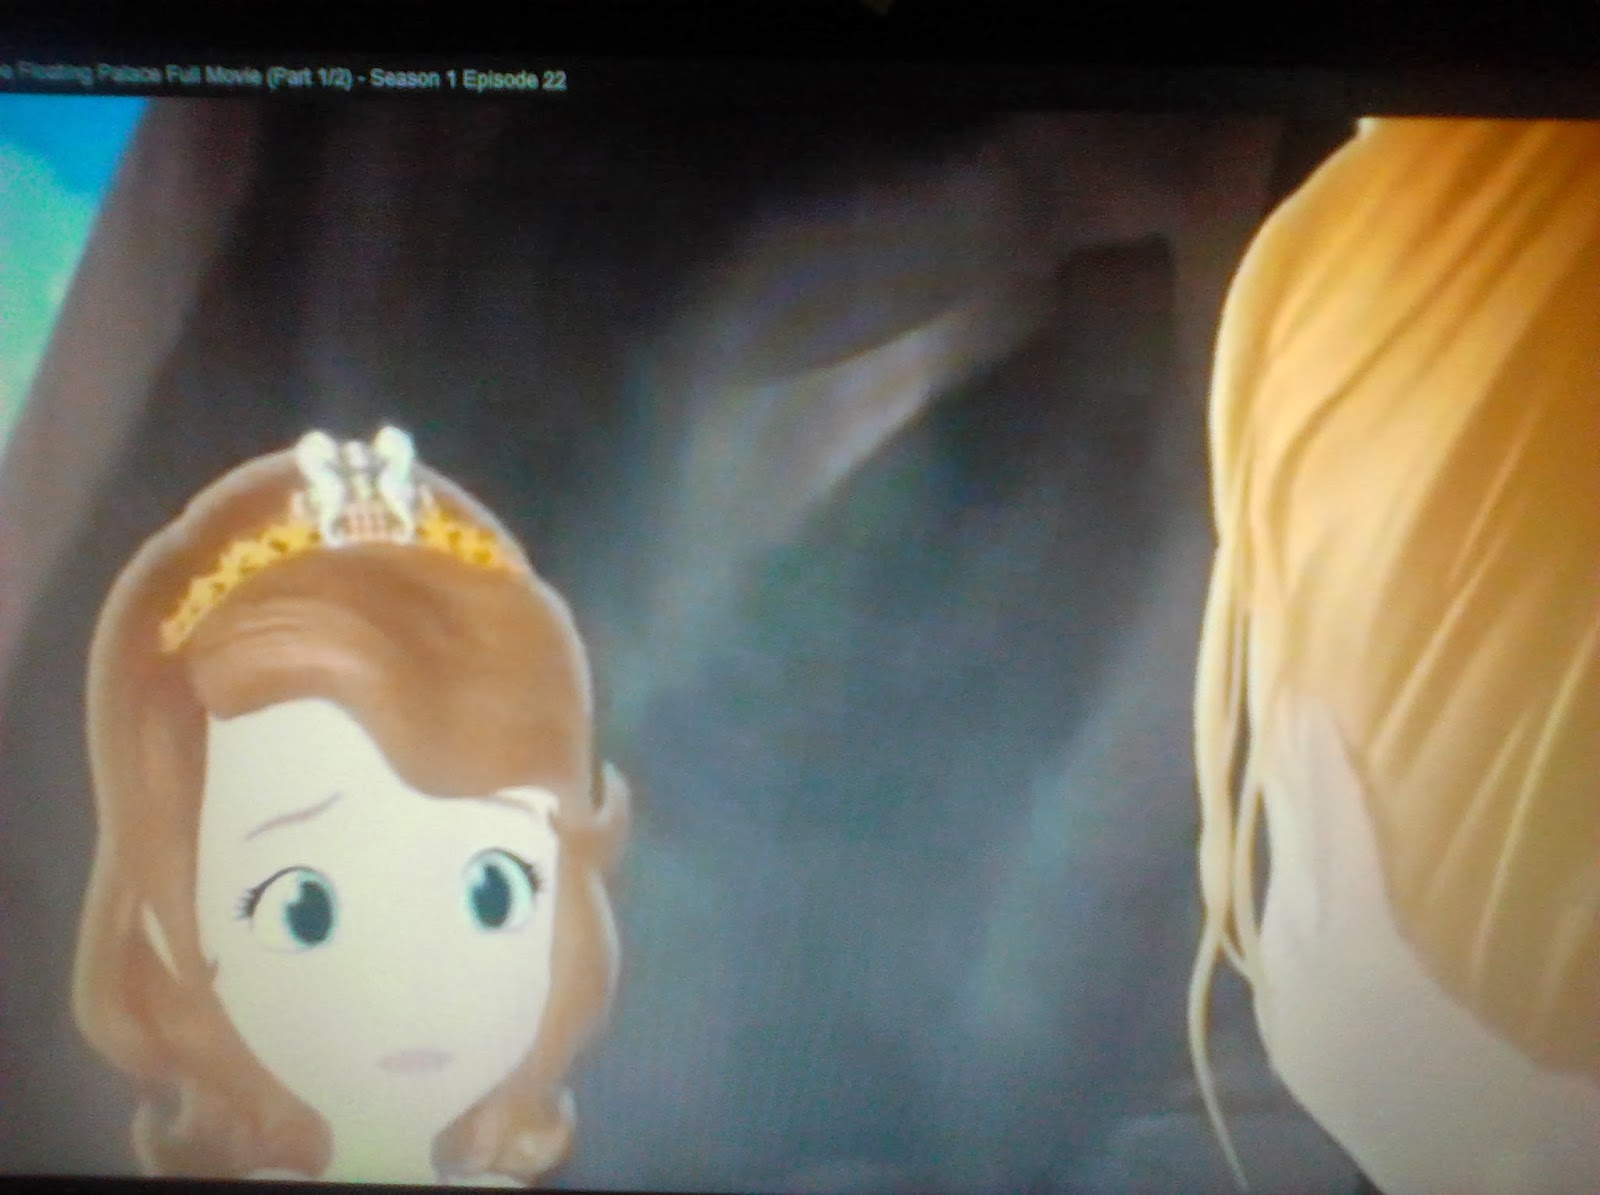 sofia the first the floating palace part 2 full movie